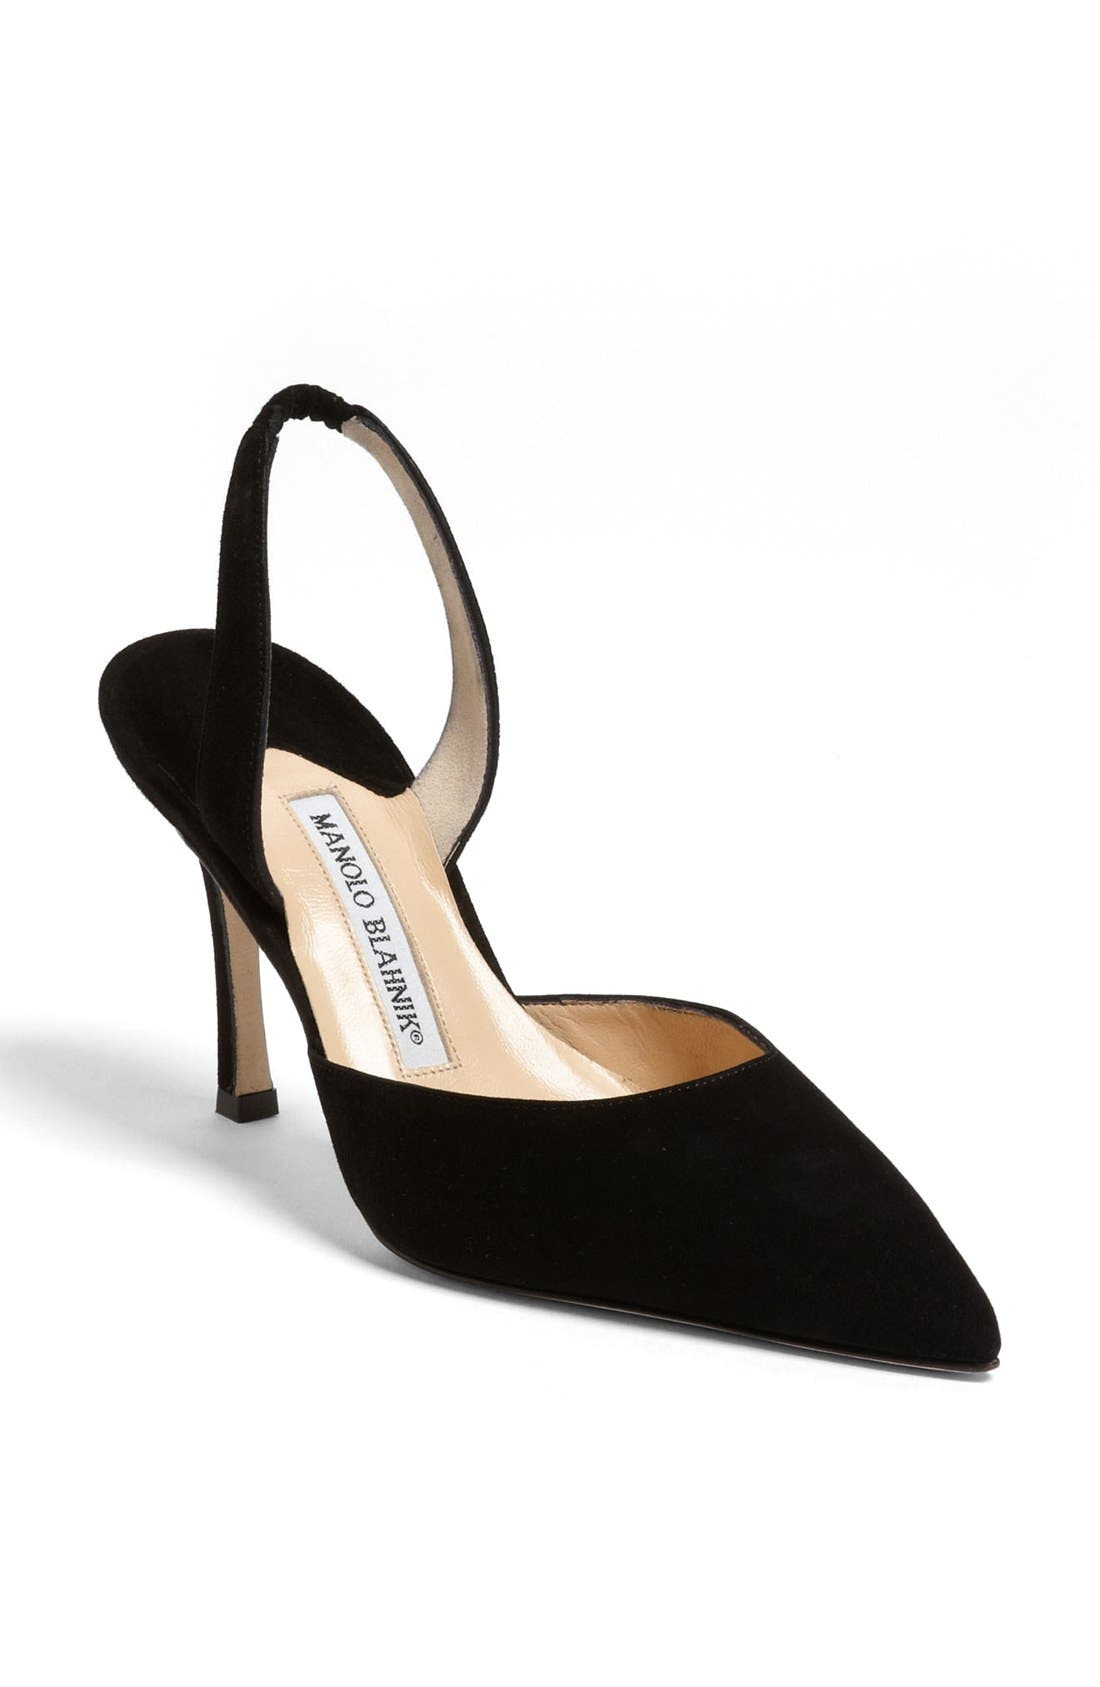 Alternate Image 1 Selected - Manolo Blahnik 'Carolyne' Slingback Pump (Women)